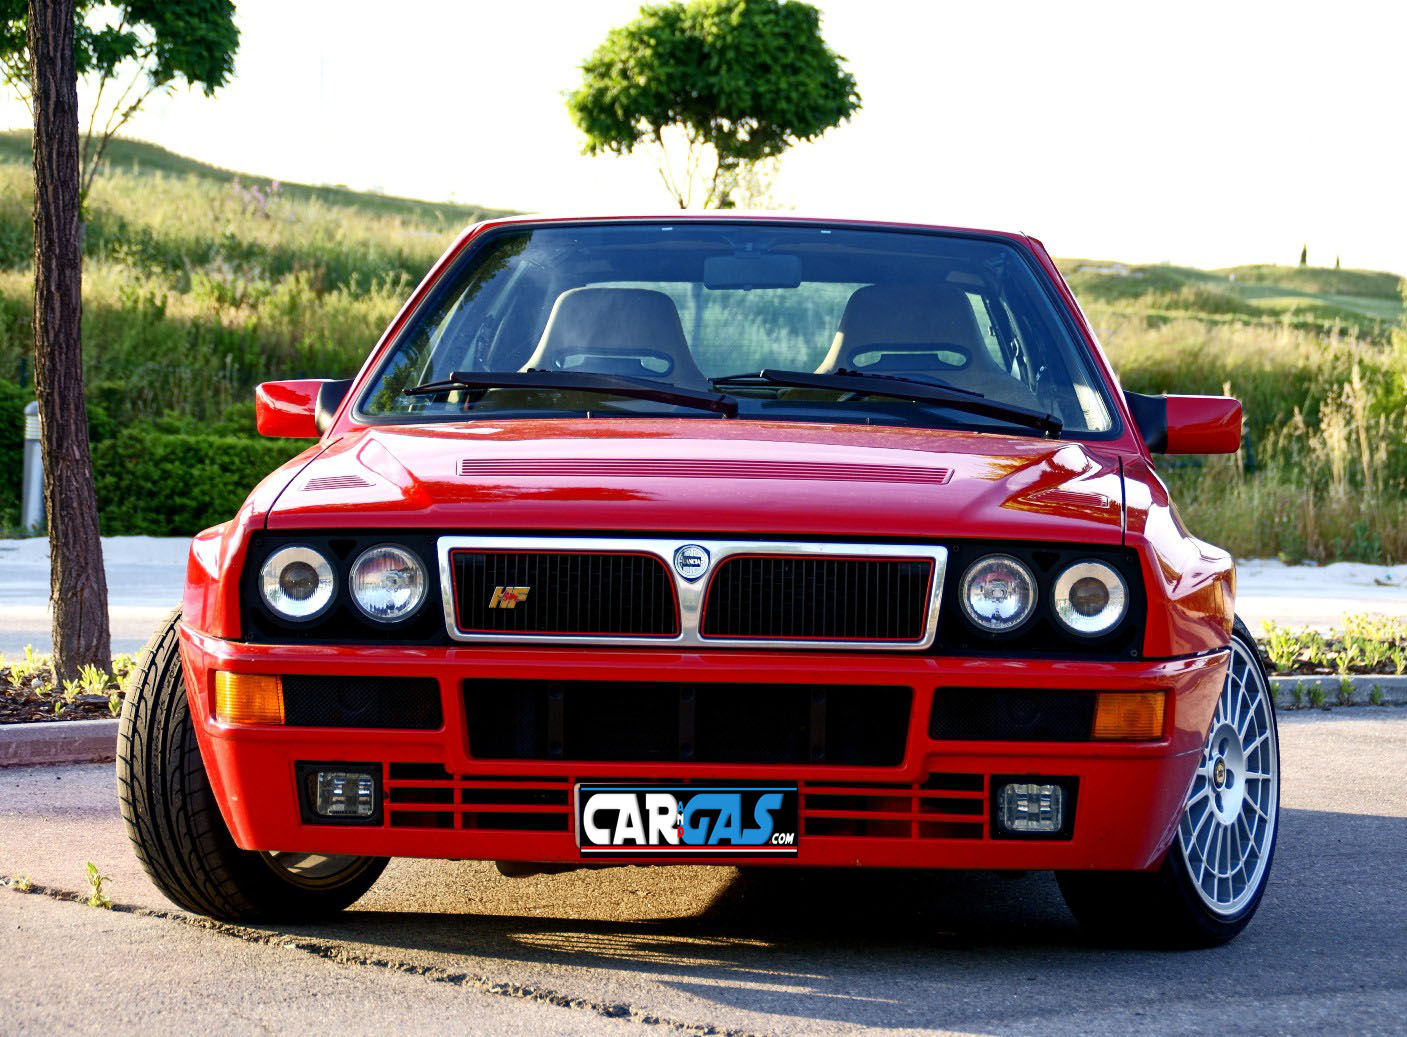 lancia delta hf integrale evo 2 frontal car and gas. Black Bedroom Furniture Sets. Home Design Ideas